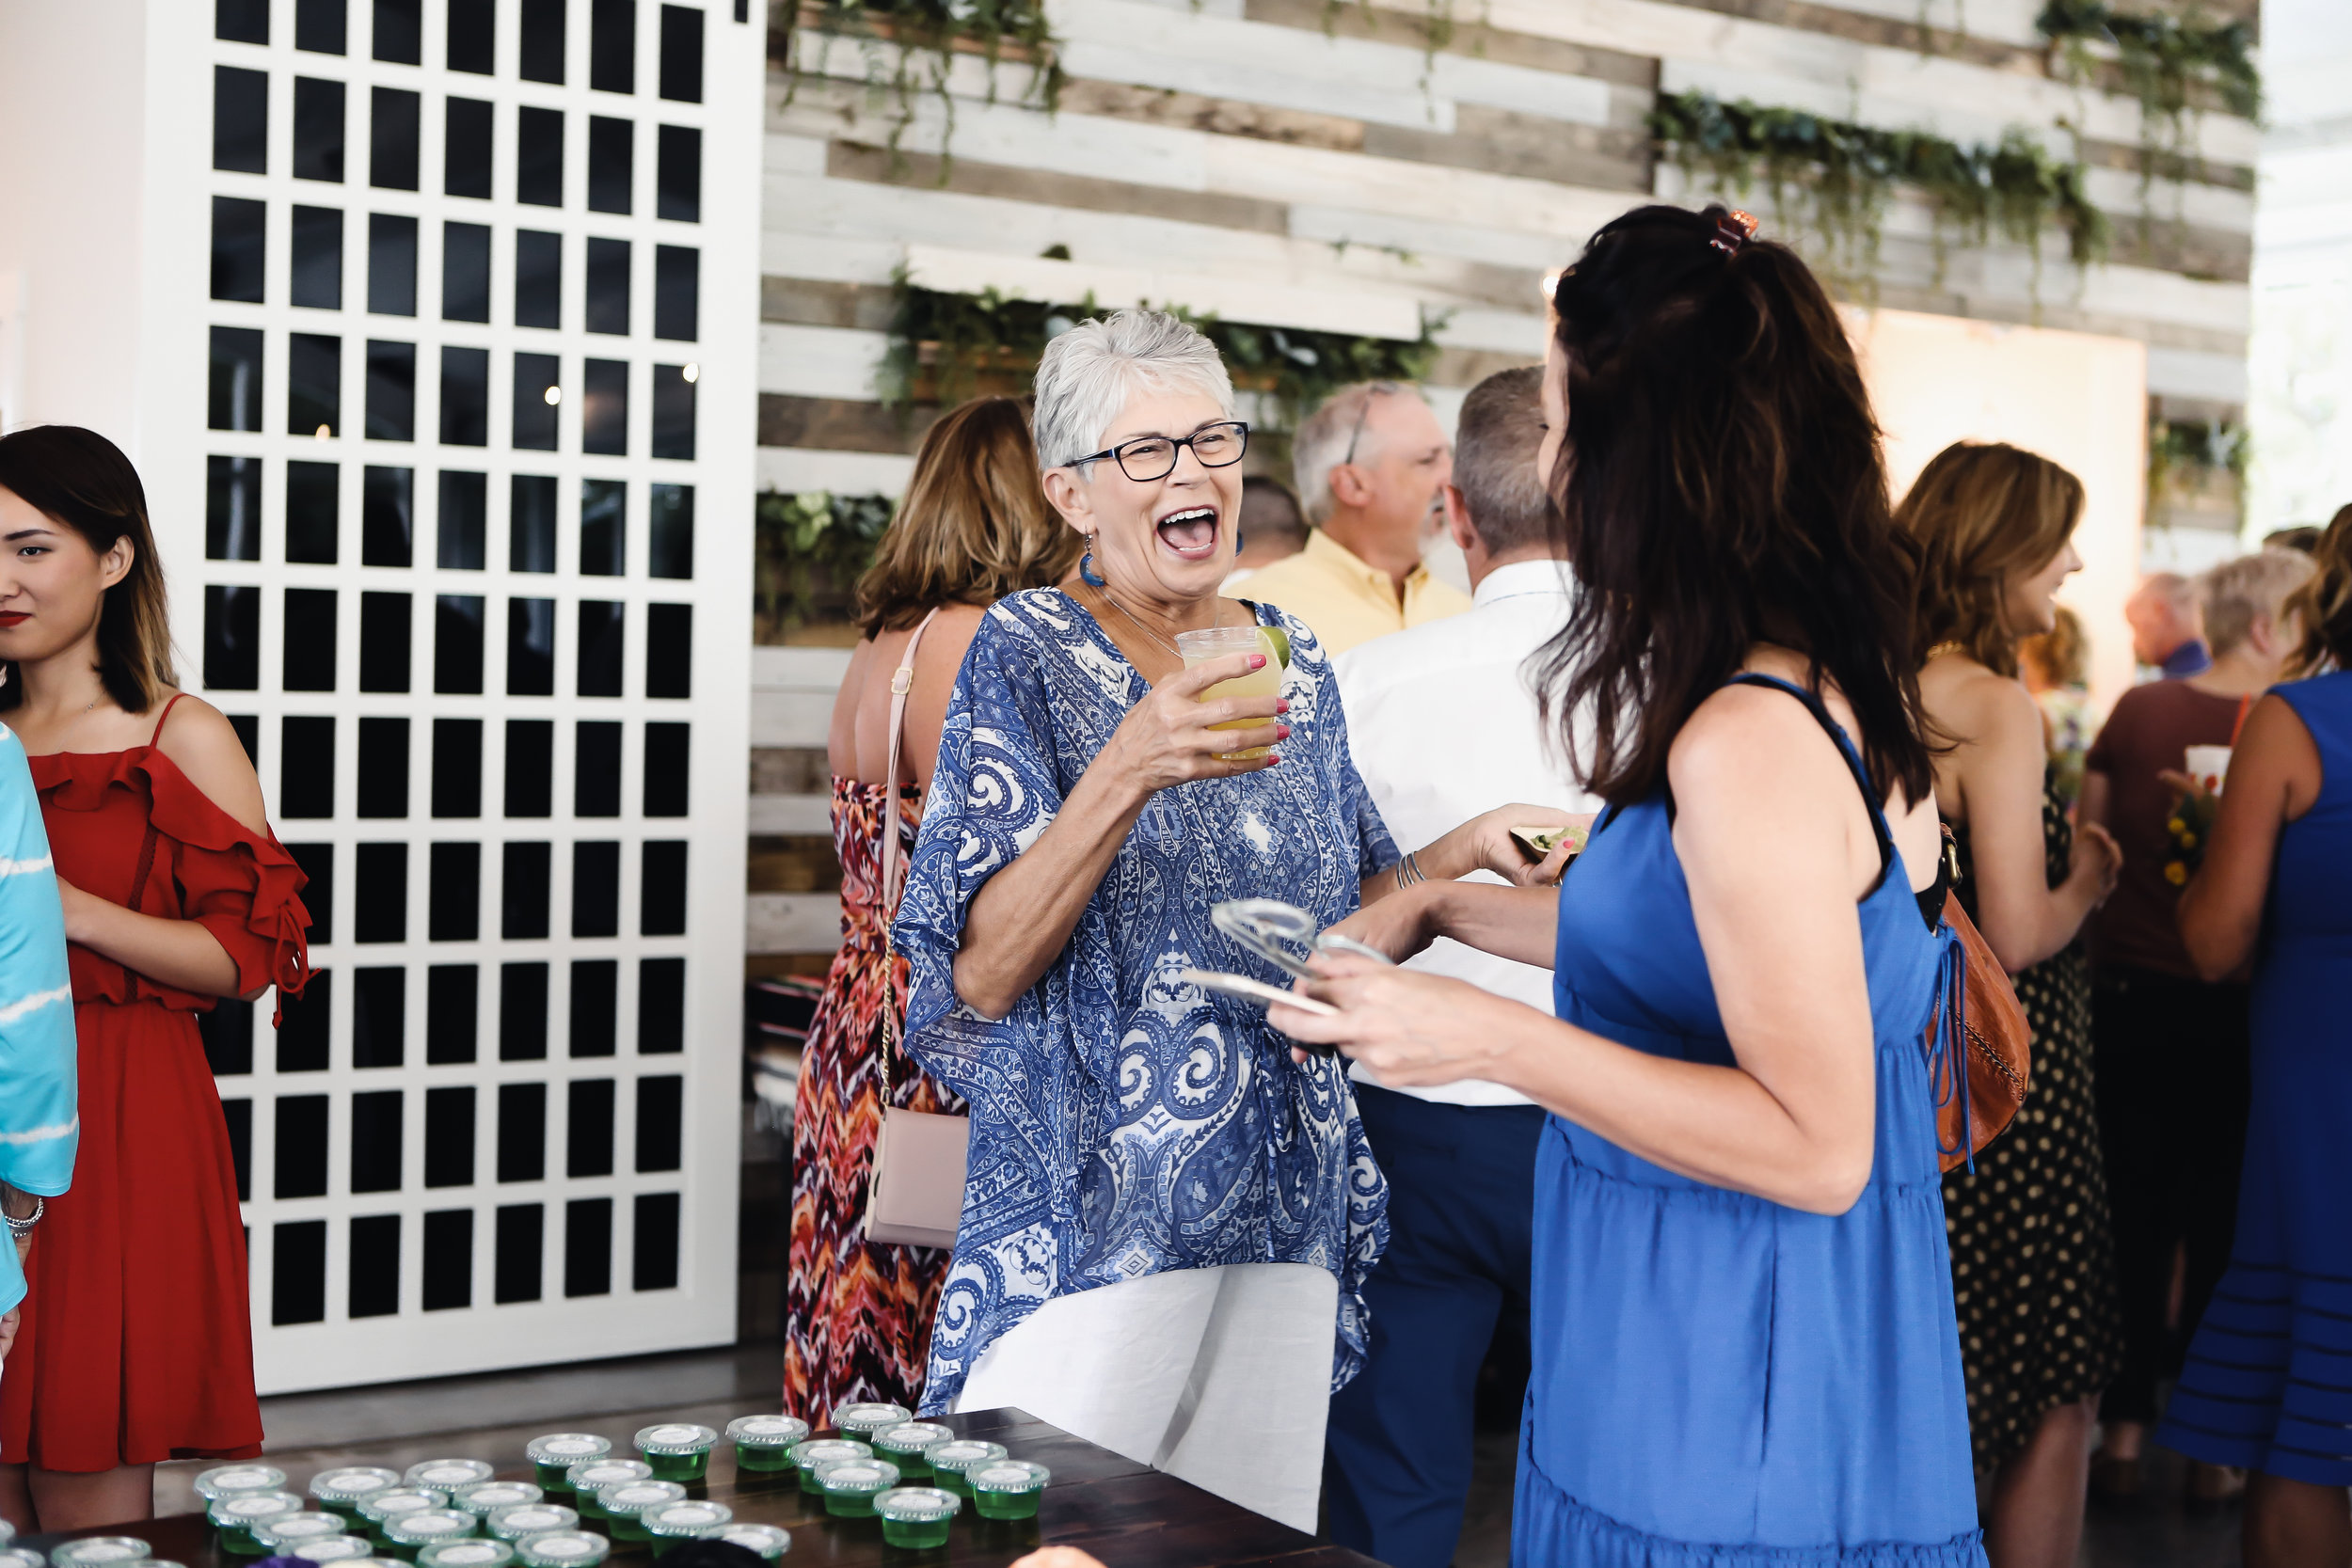 Natalee and Felicia's guests have fun celebrating at Greenhouse Two Rivers since their wedding planner took care of all the details.